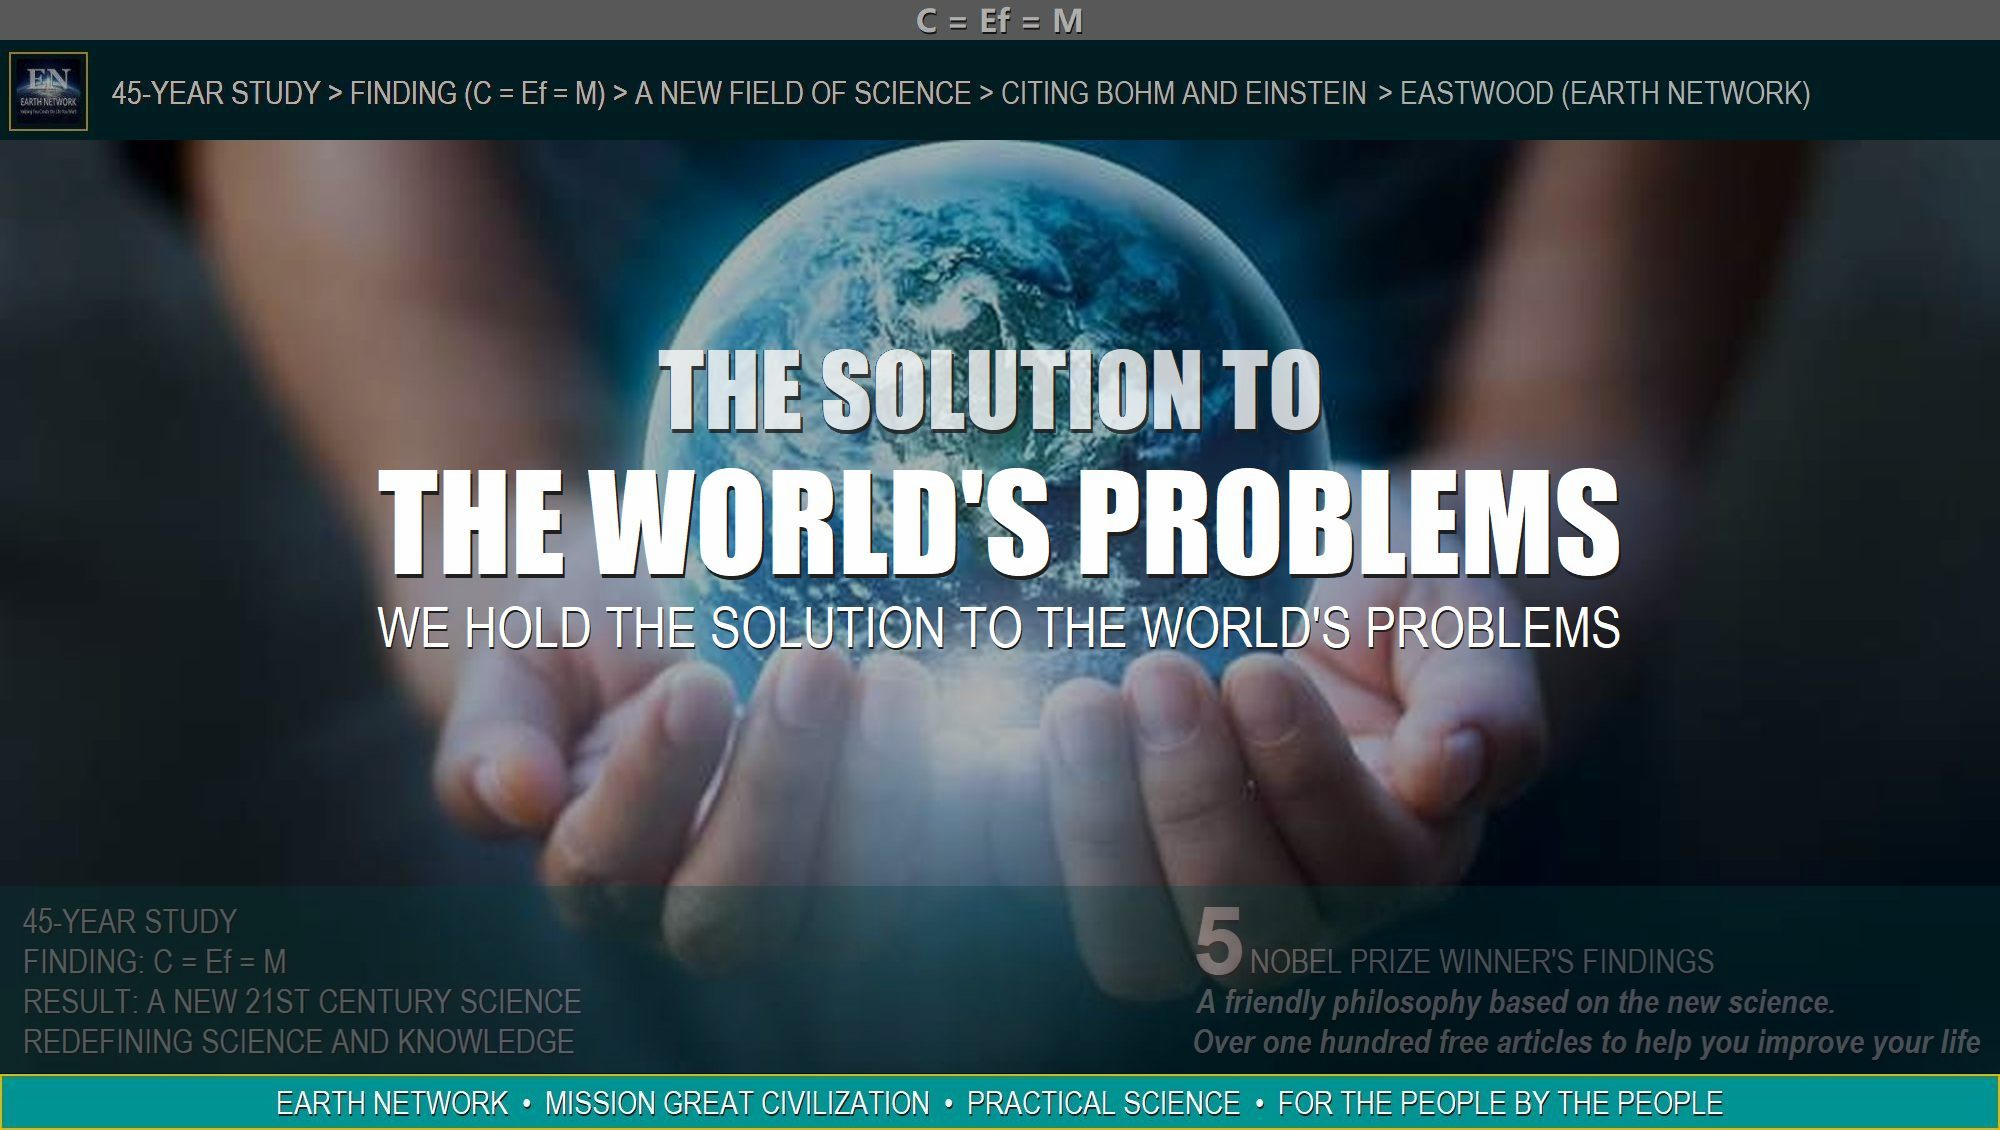 Globe of earth in hands represents us holding the solution to the world's problems for you.